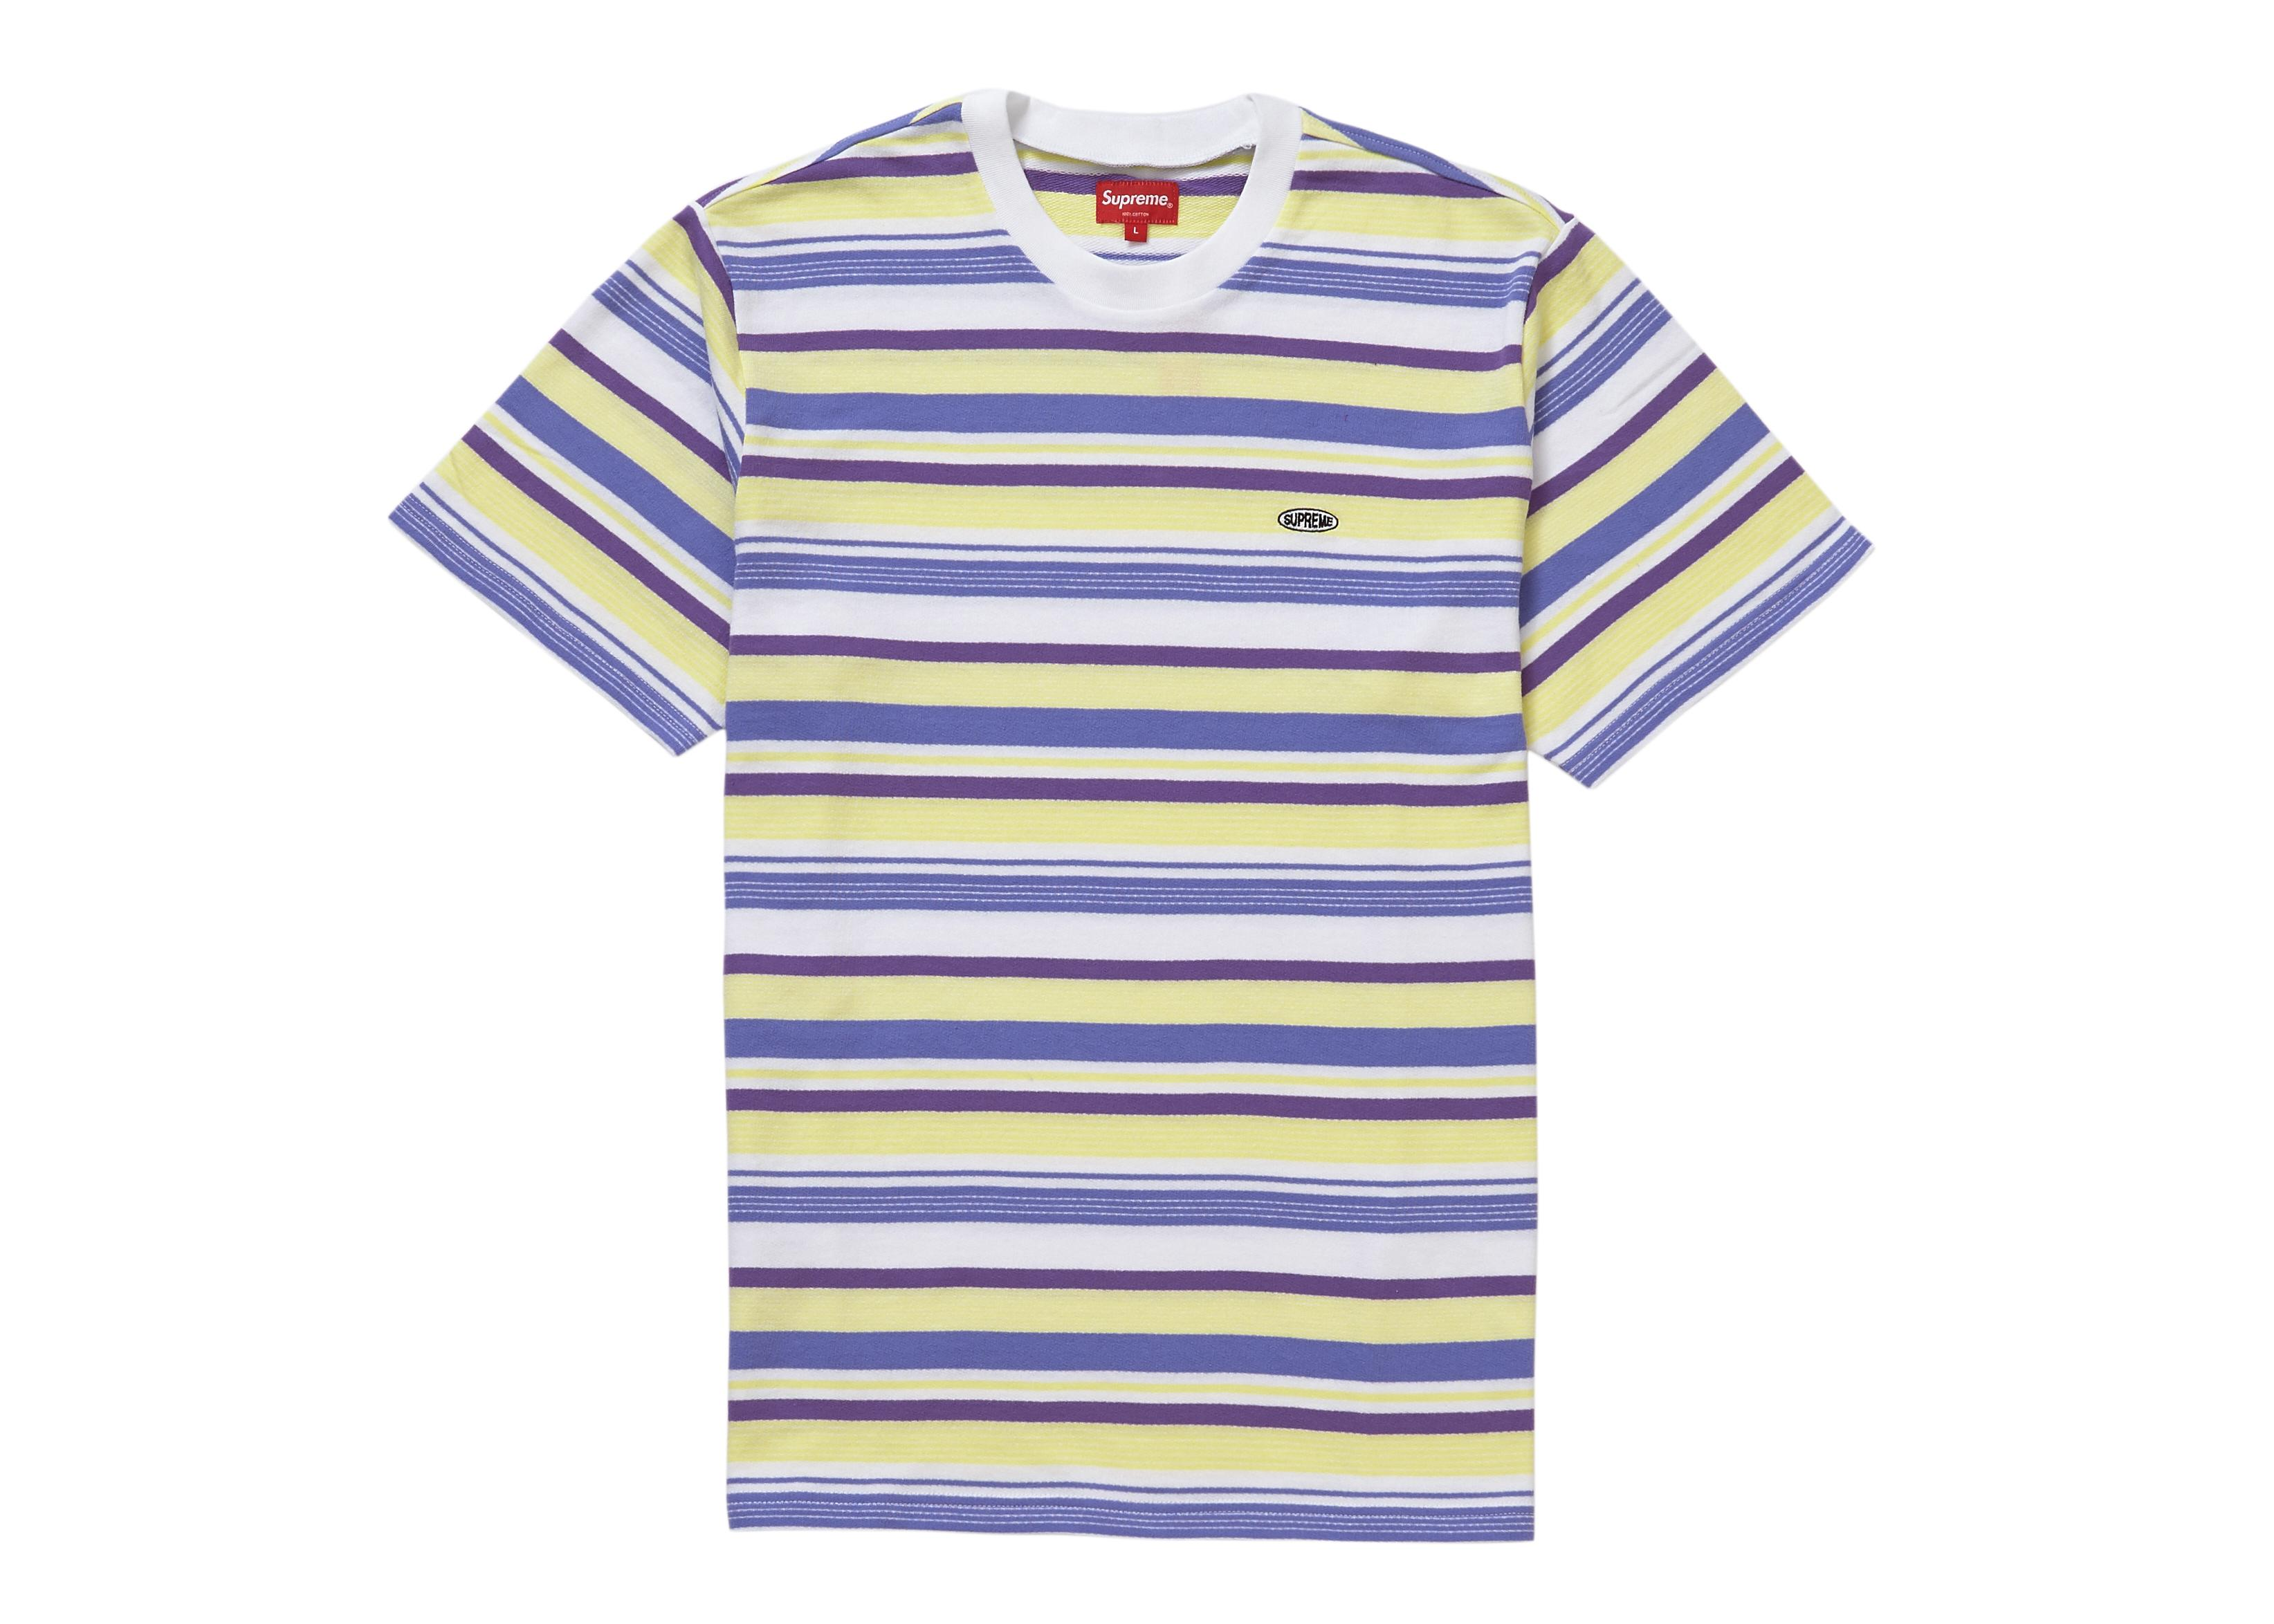 9e04e04cc3ee Lyst - Supreme Multi Stripe Ss Top (ss19) White in White for Men